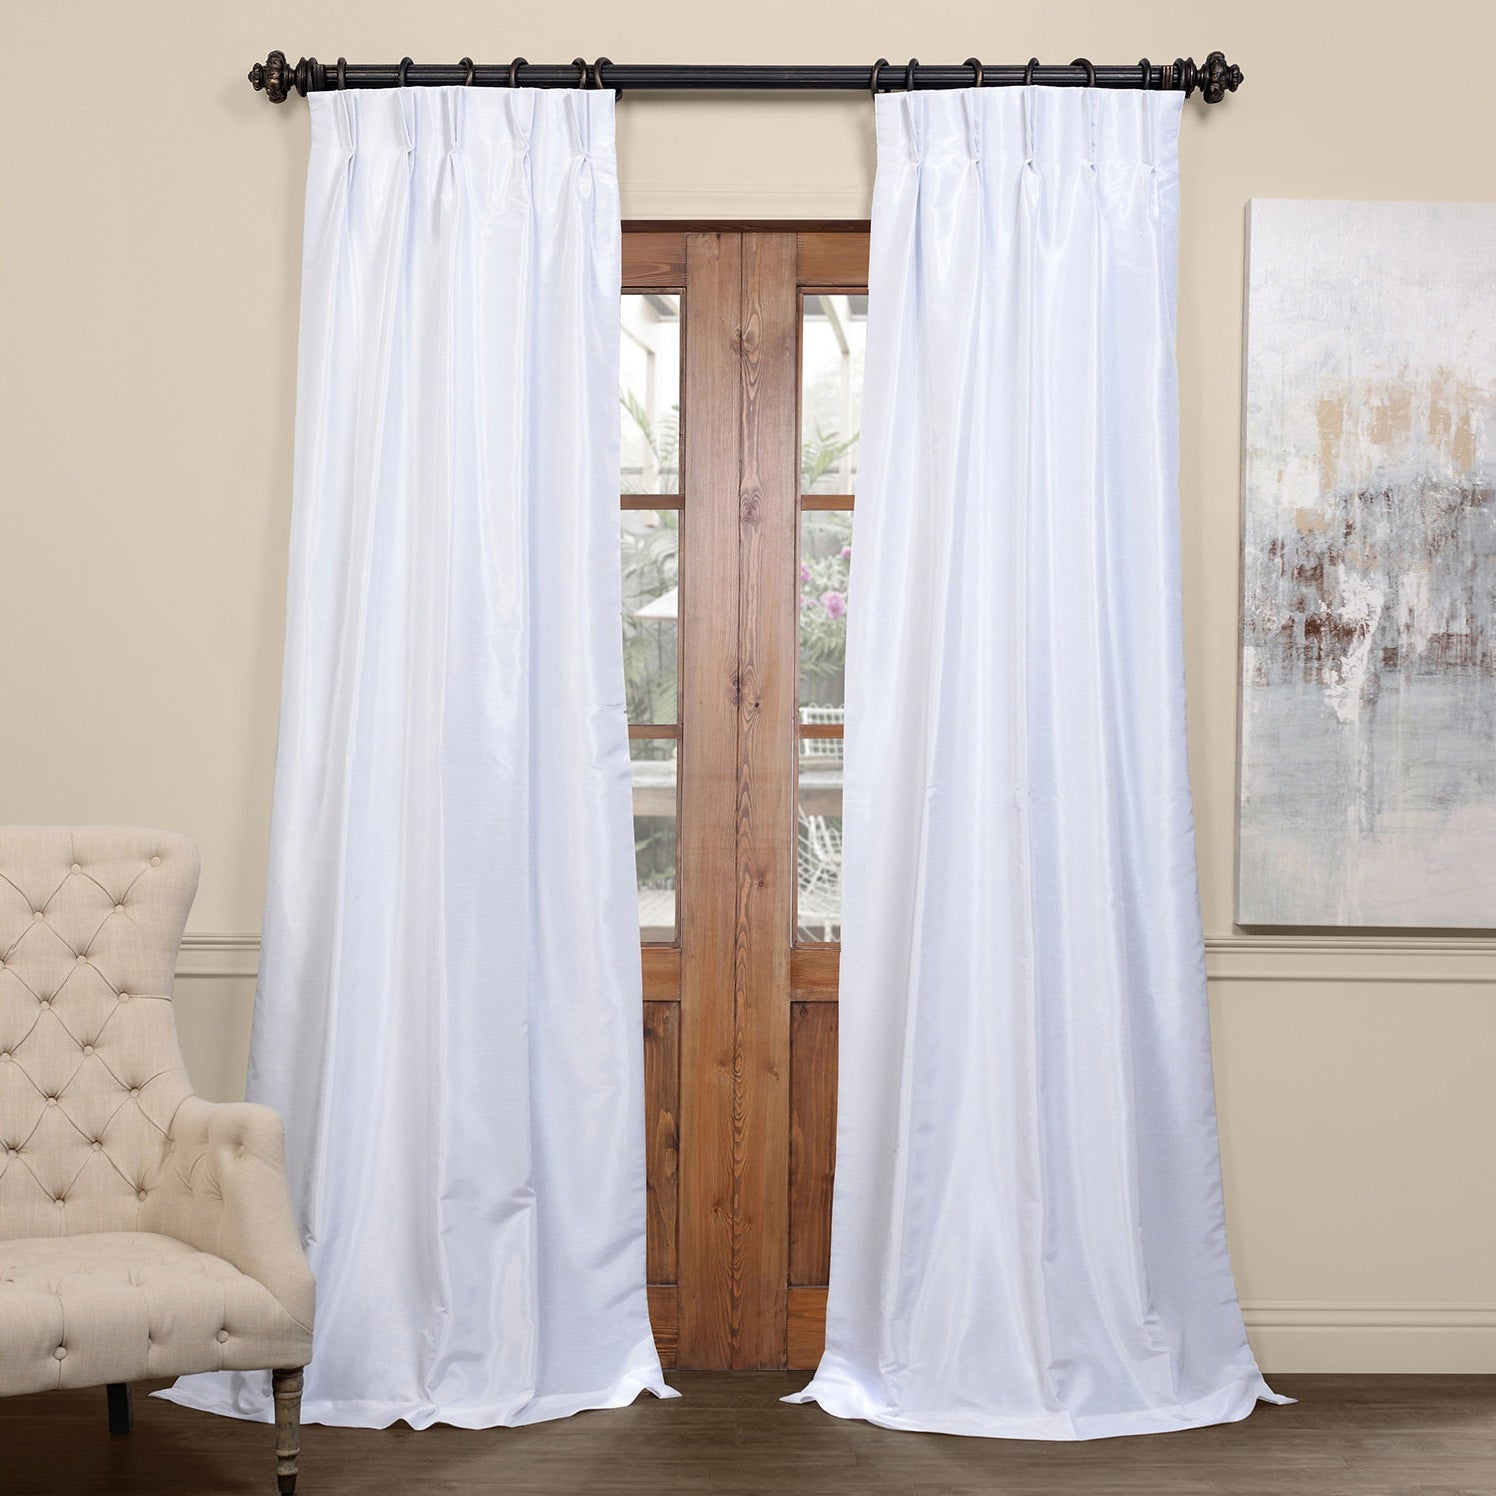 Exclusive Fabrics Signature Pinch Pleated Blackout Solid Faux Silk Curtain Panel With True Blackout Vintage Textured Faux Silk Curtain Panels (View 7 of 30)